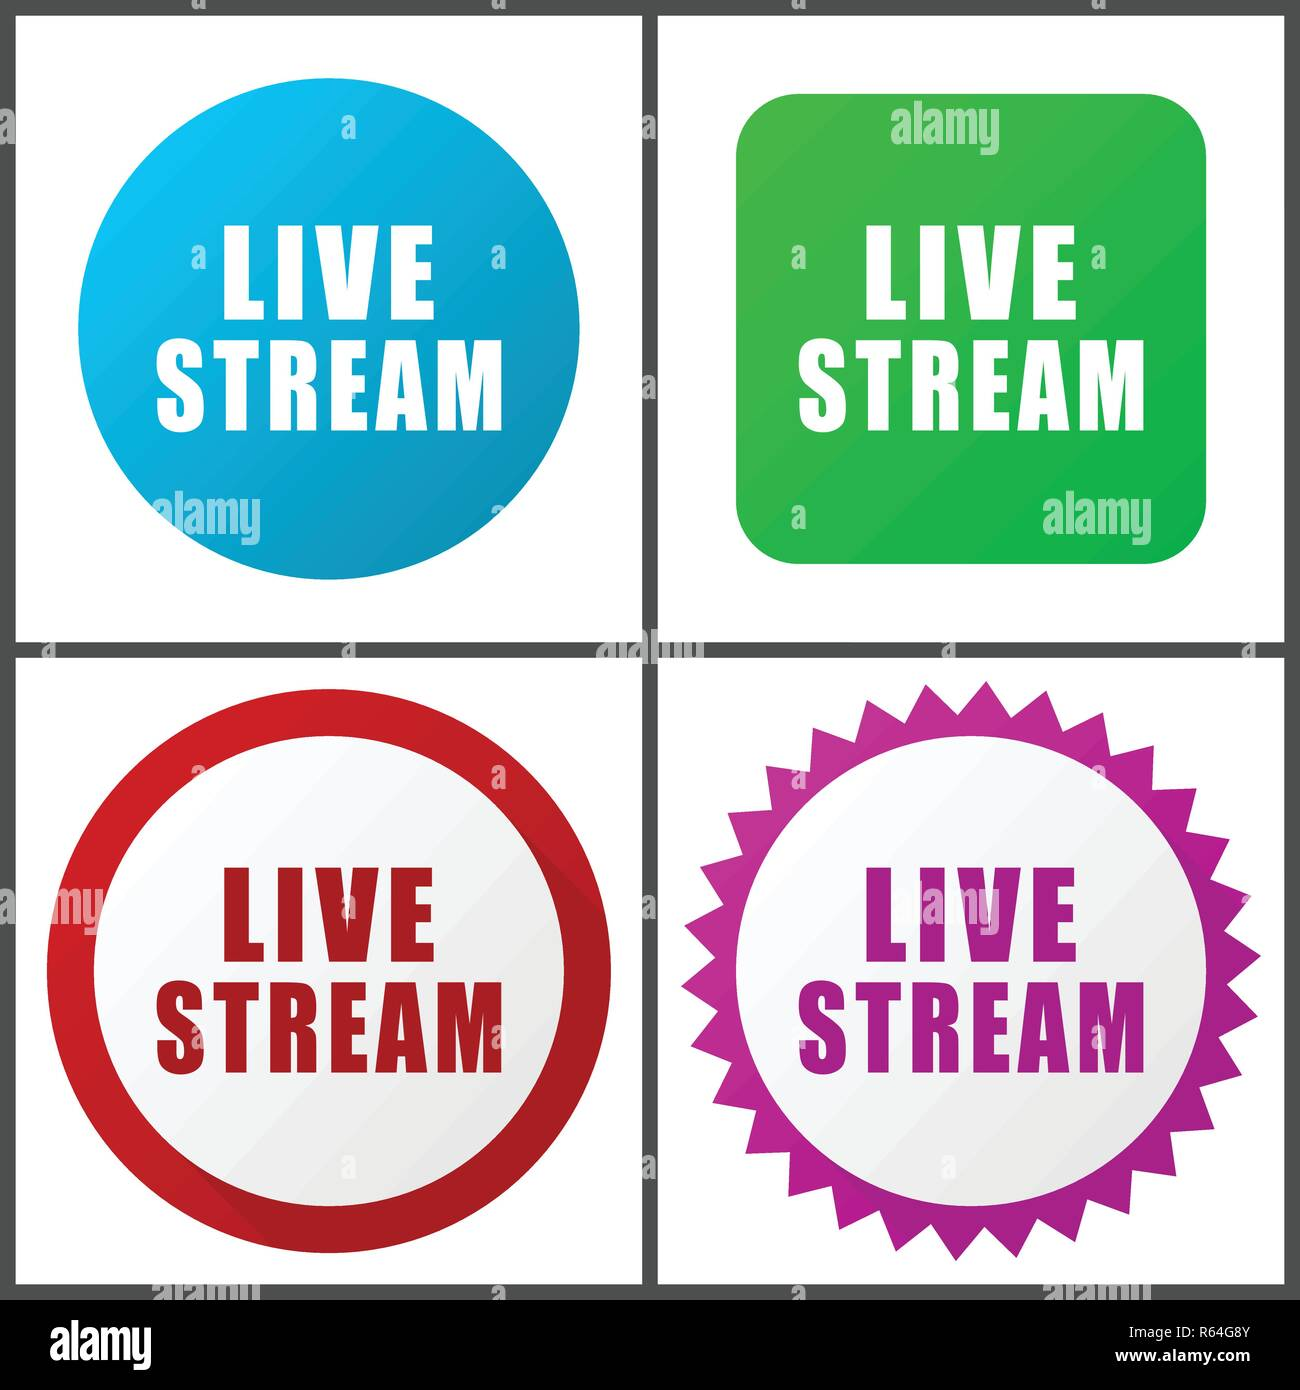 Live stream red, blue, green and pink vector icon set. Web icons. Flat design signs and symbols easy to edit - Stock Image